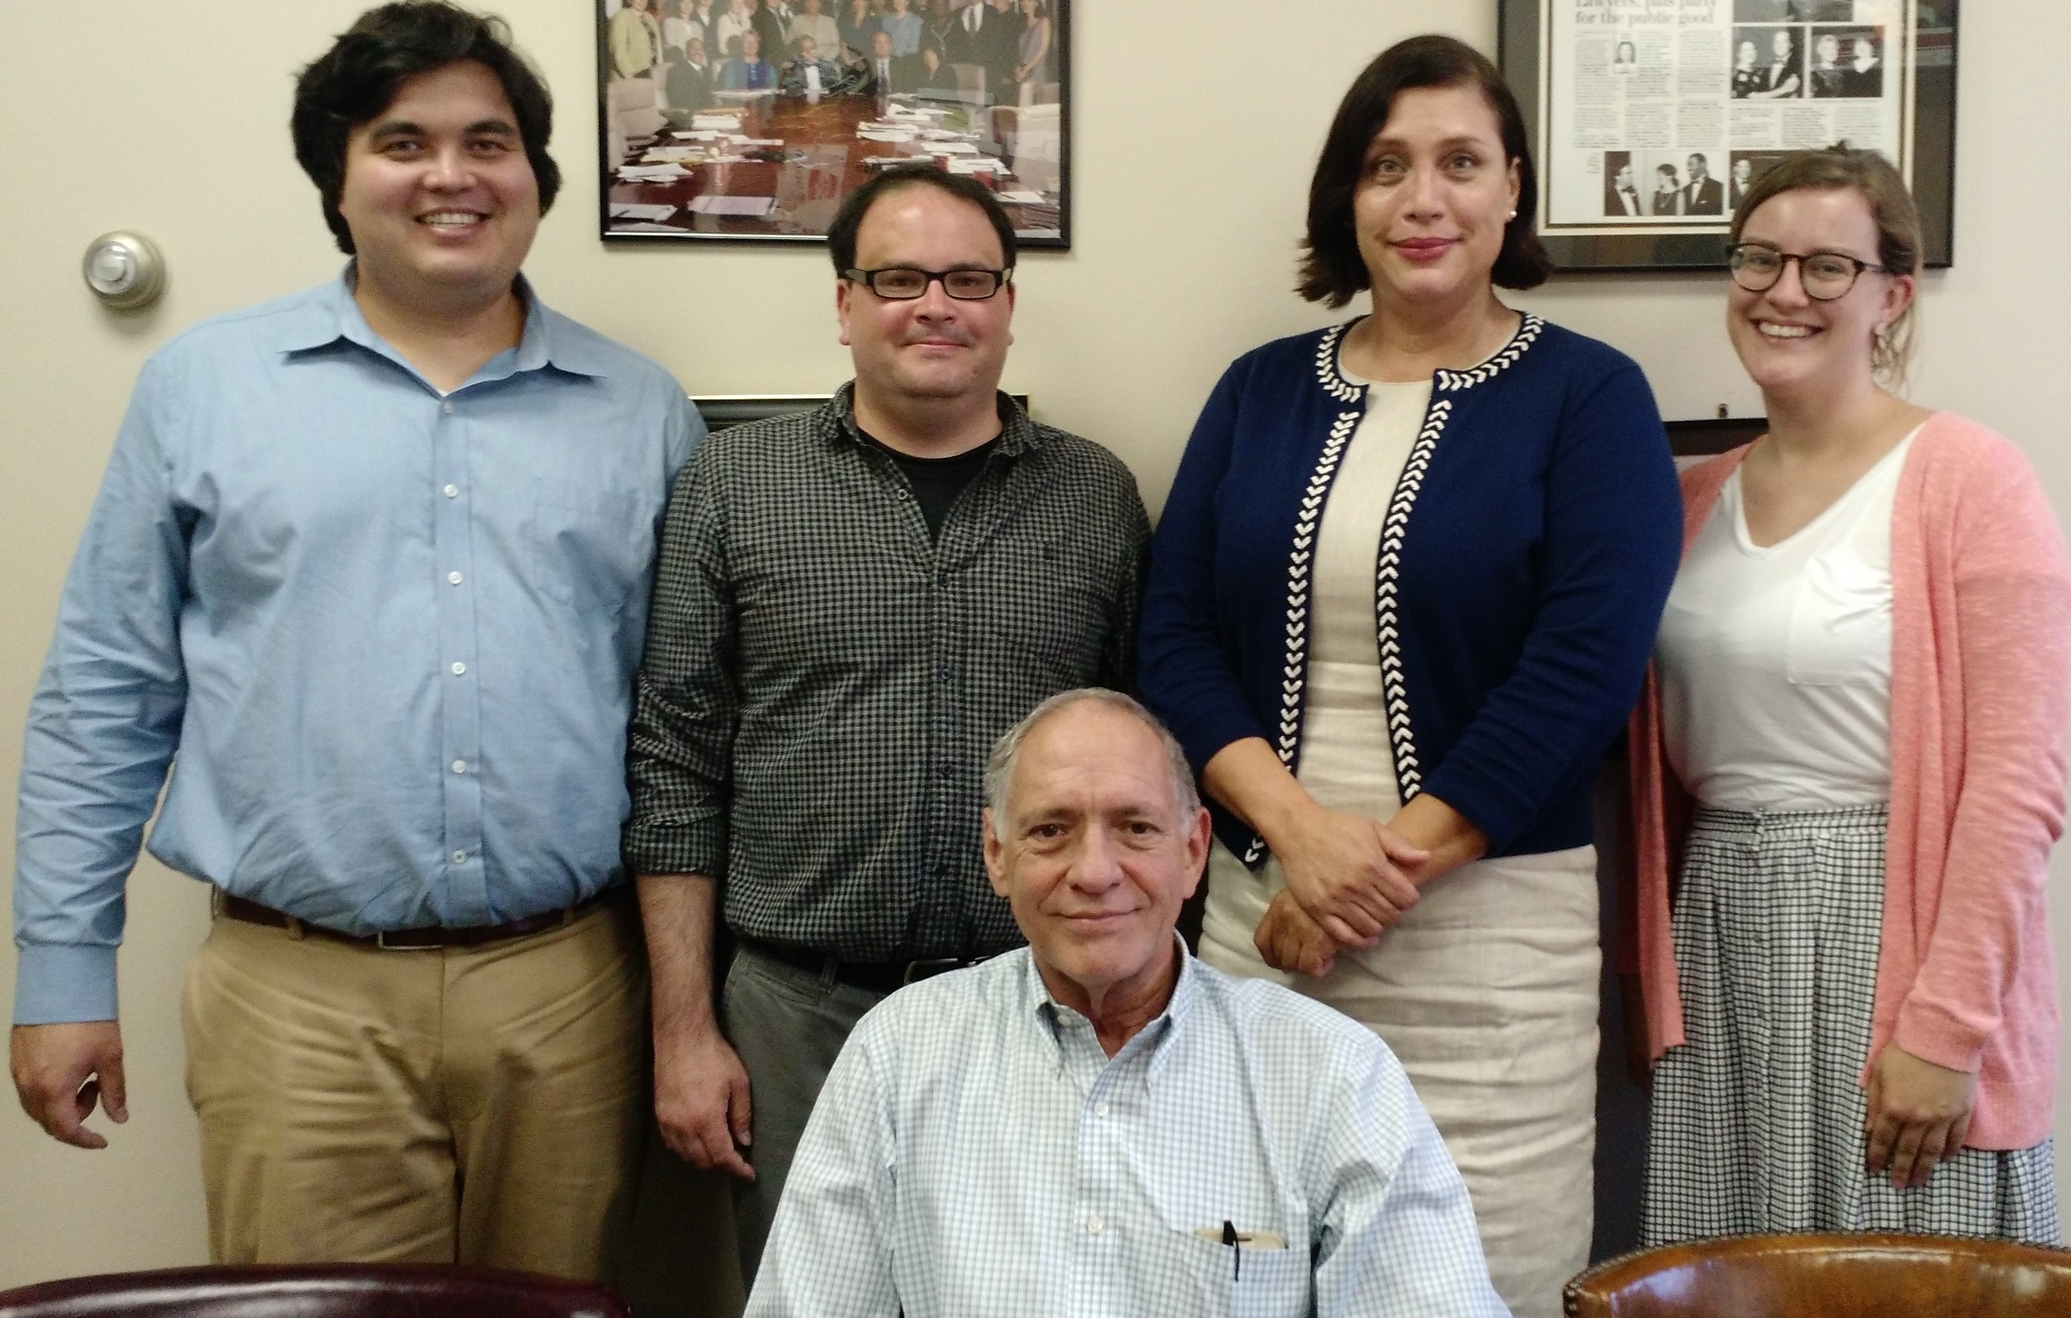 Summer Interns (l to r) Mike Kasper, Kirk Evans, Janie Boneta and Samantha Fox; seated Linton Carney. Not pictured: Christopher Freire